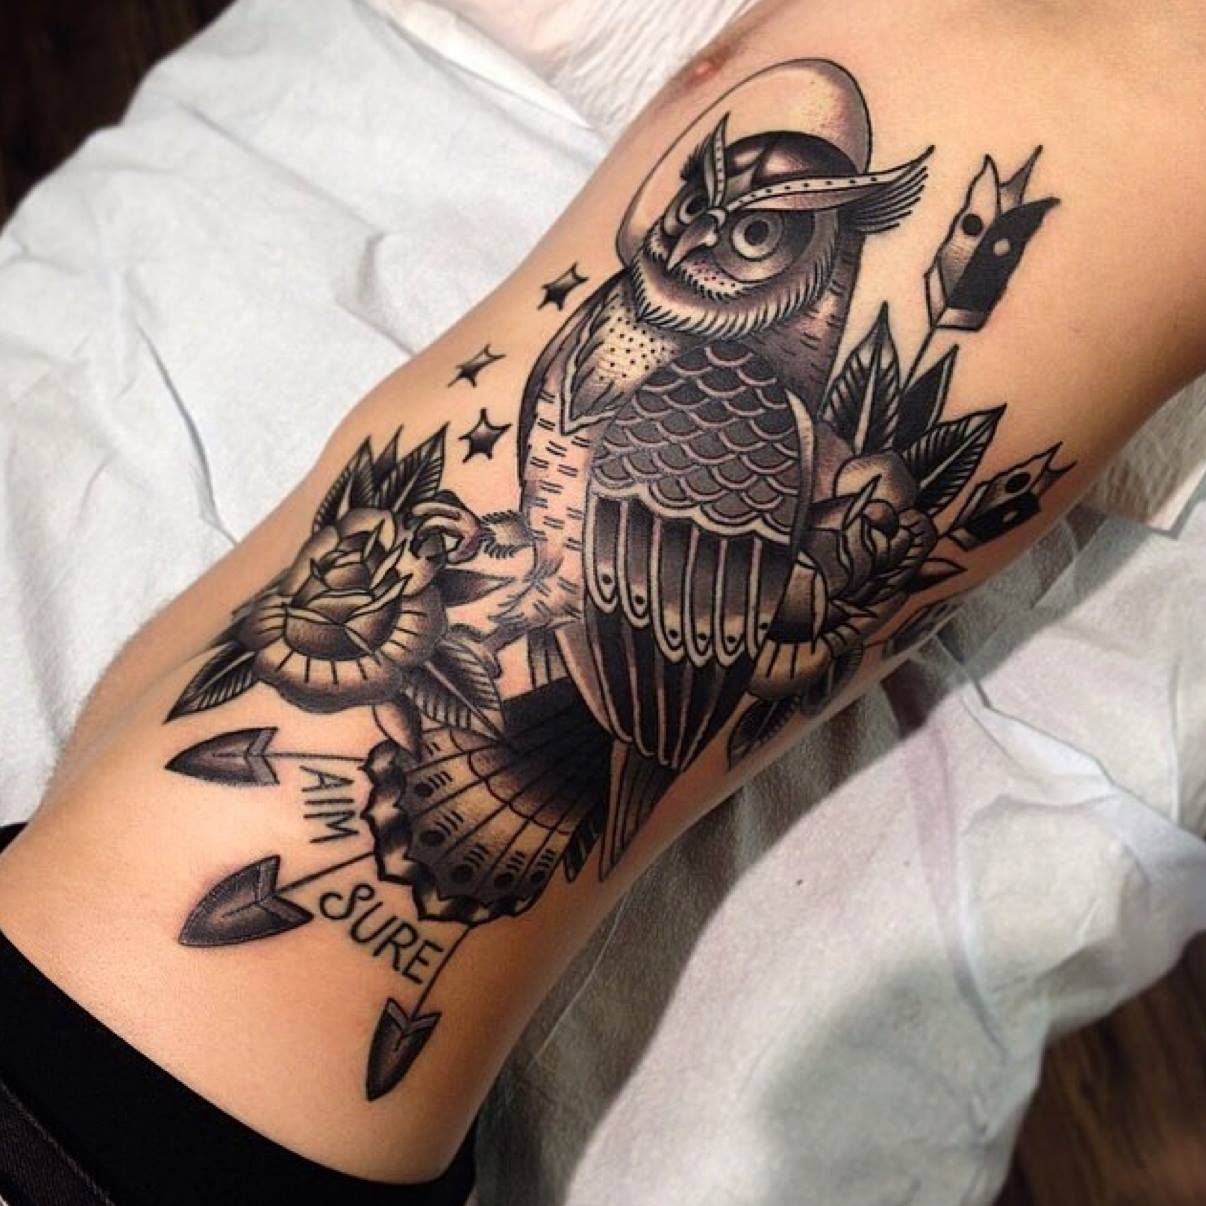 Watercolor tattoo artists in houston texas - Houston Tattoo Artists Posts Tattoos Gray Amsterdam Birds Black Awesome